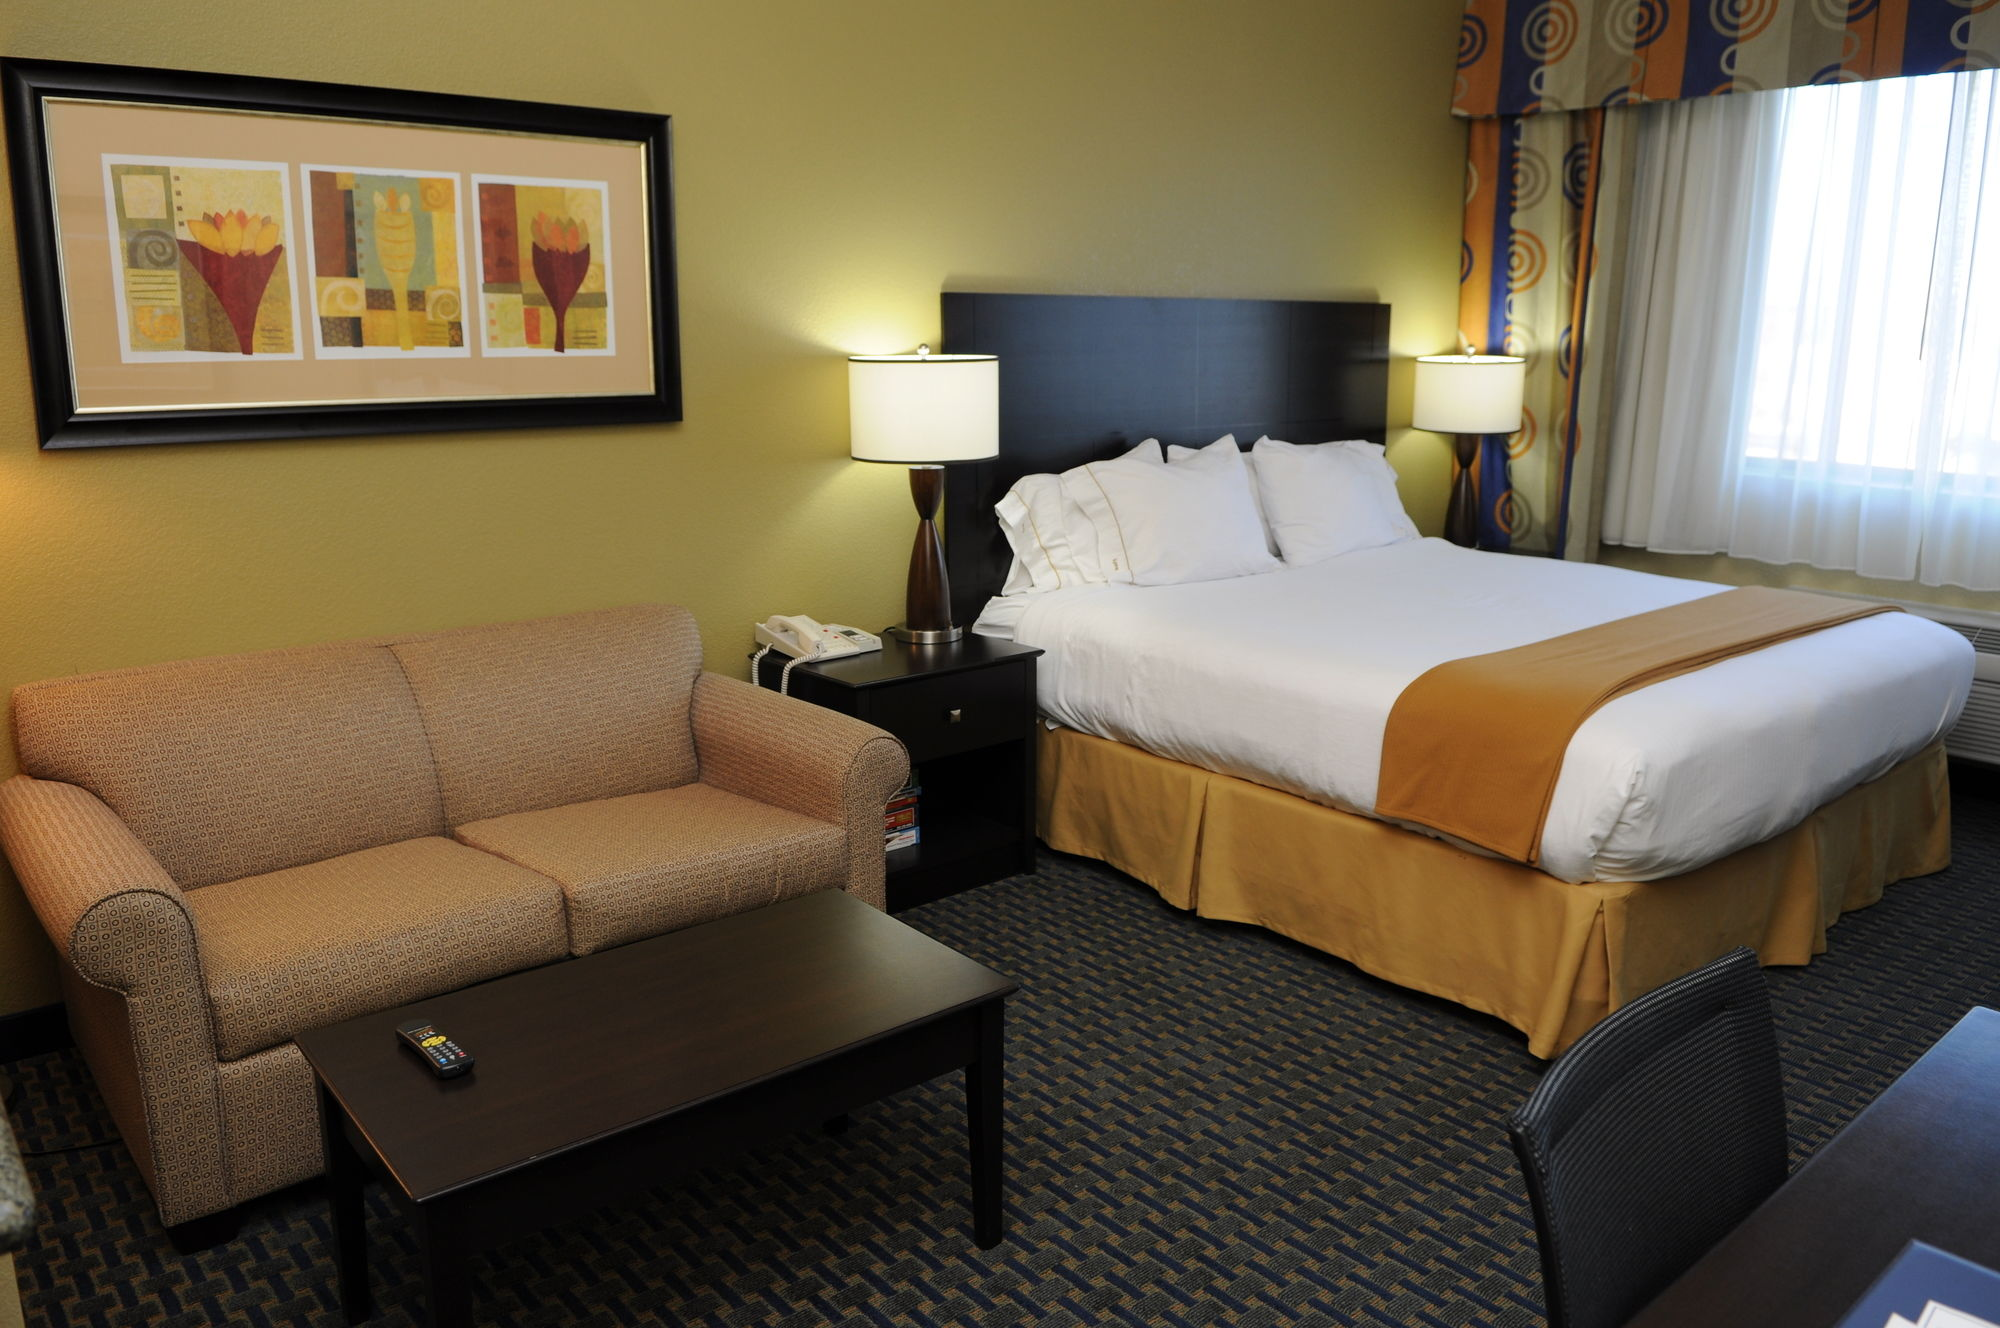 Phoenix Hotel Coupons for Phoenix, Arizona - FreeHotelCoupons.com